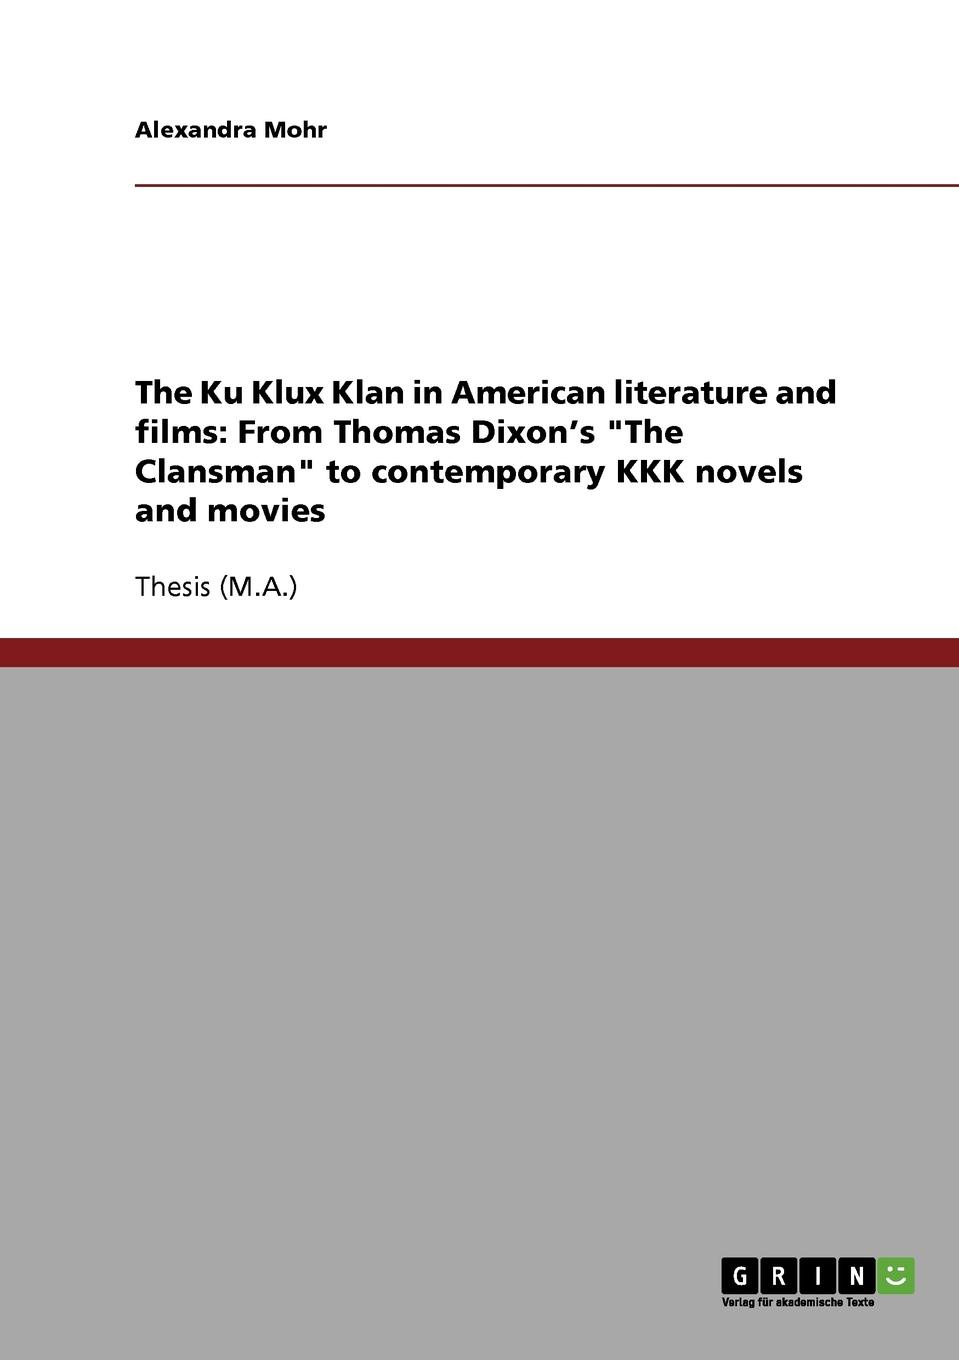 Alexandra Mohr The Ku Klux Klan in American literature and films. From Thomas Dixon.s